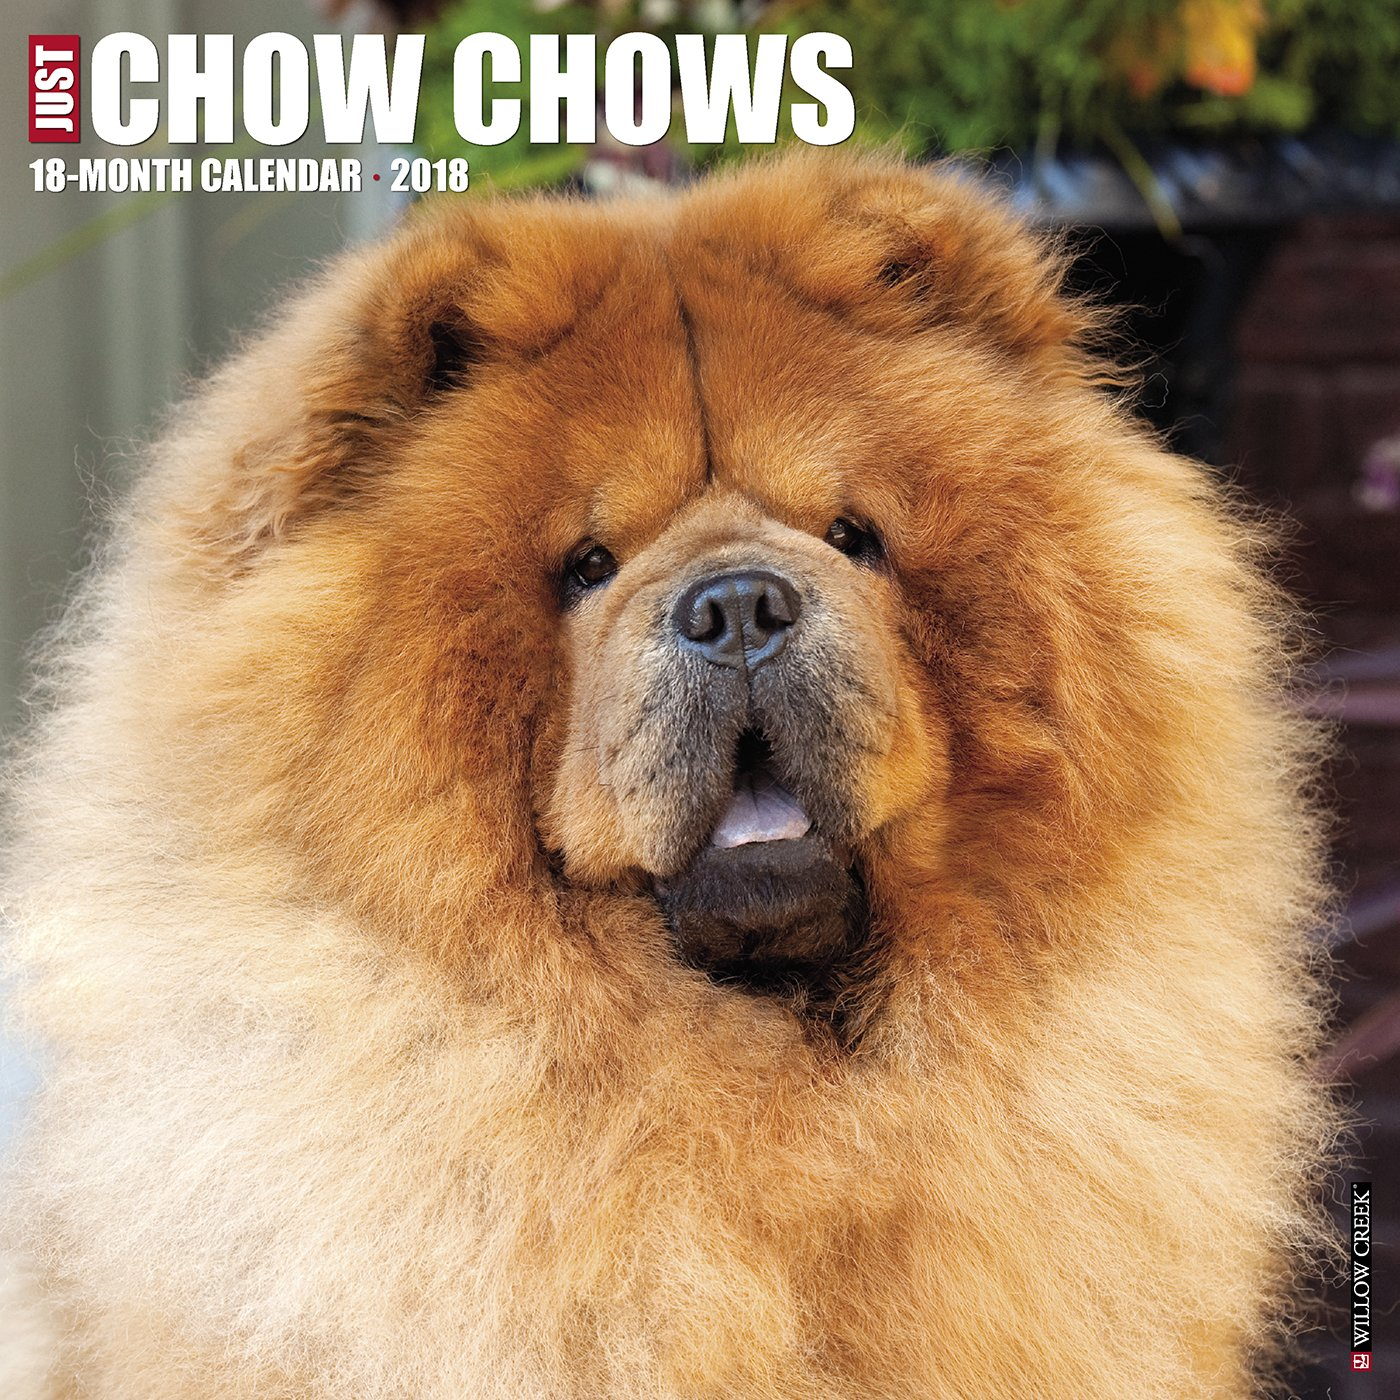 Just Chow Chows 2018 Calendar product image